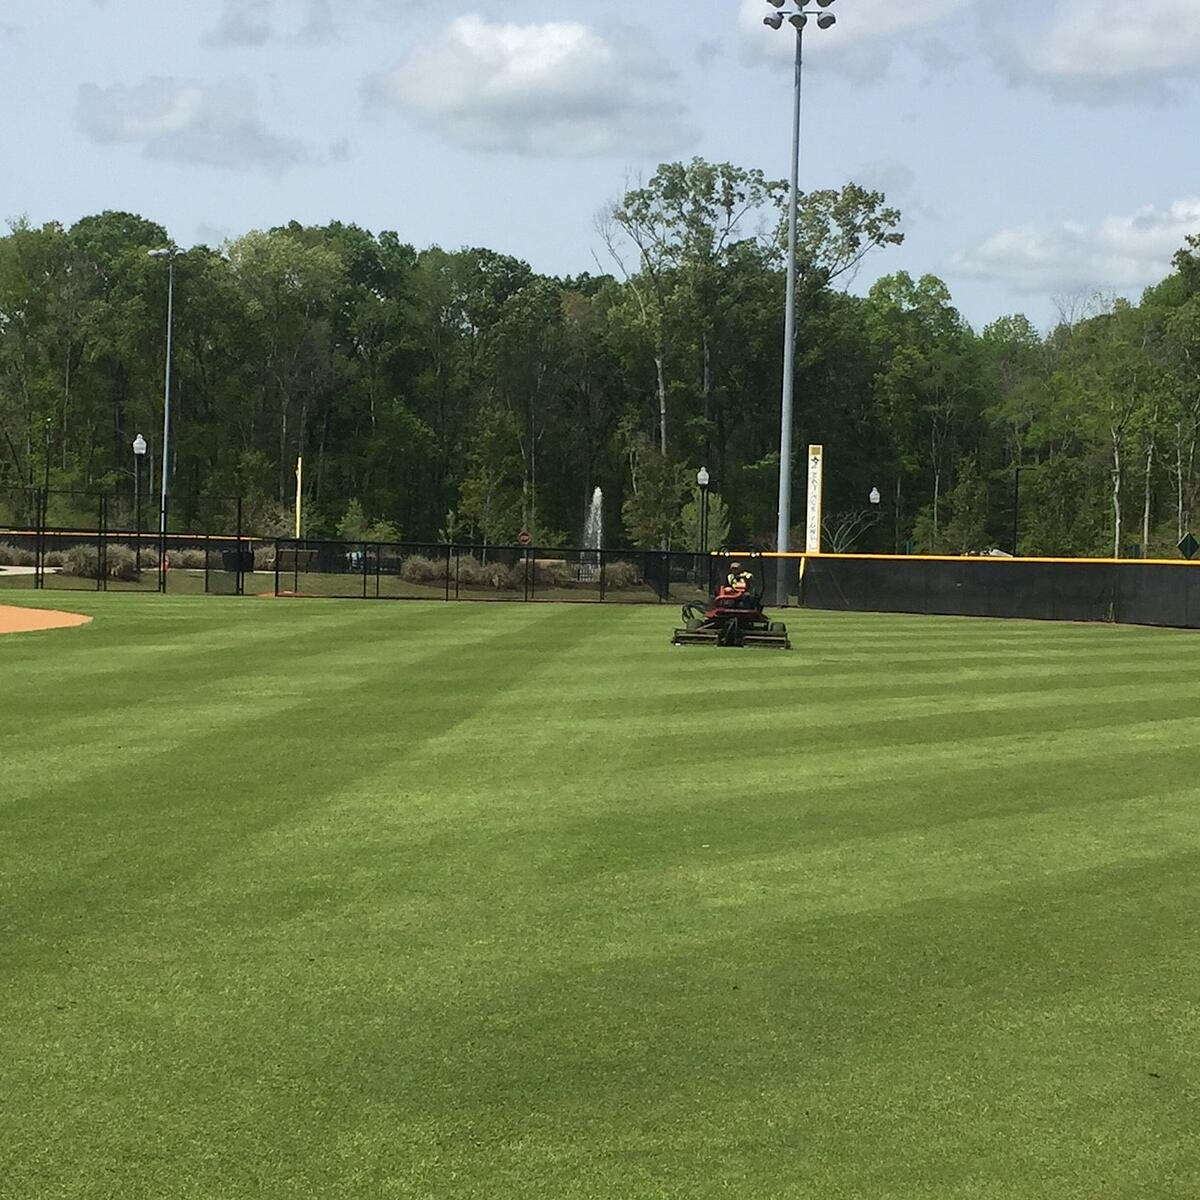 commercial mowing at athletic field